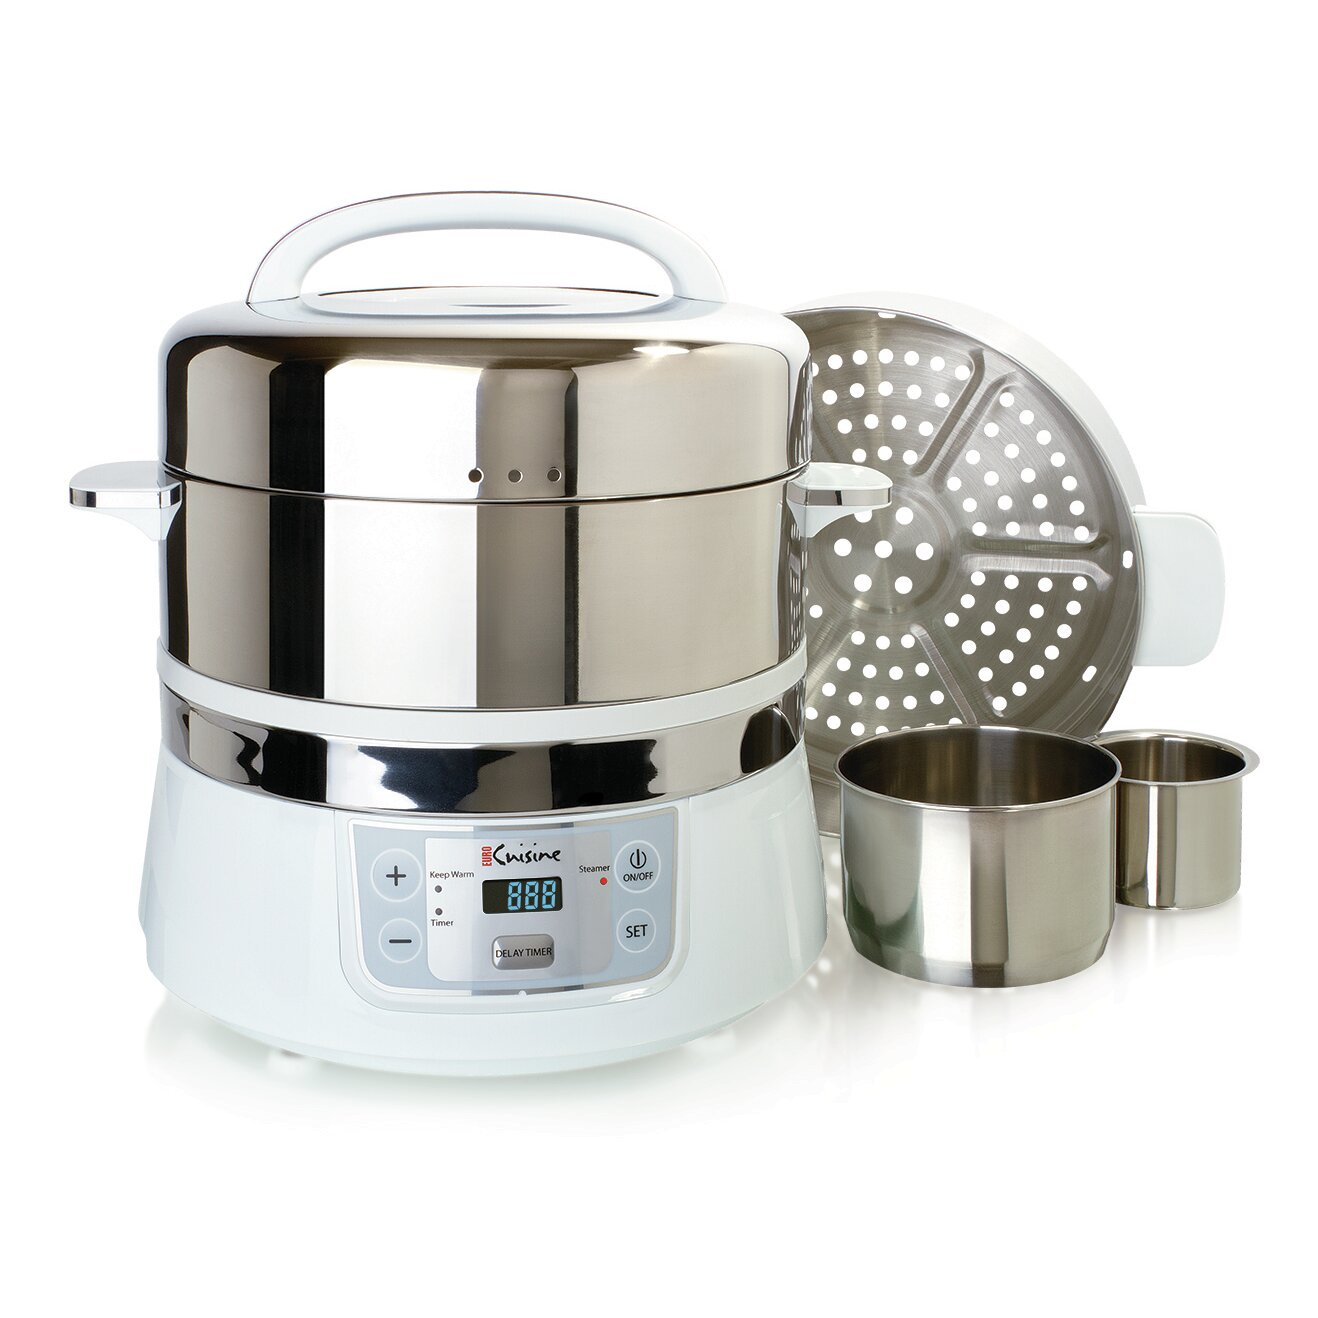 Euro Cuisine Stainless Steel Electric Food Steamer Reviews